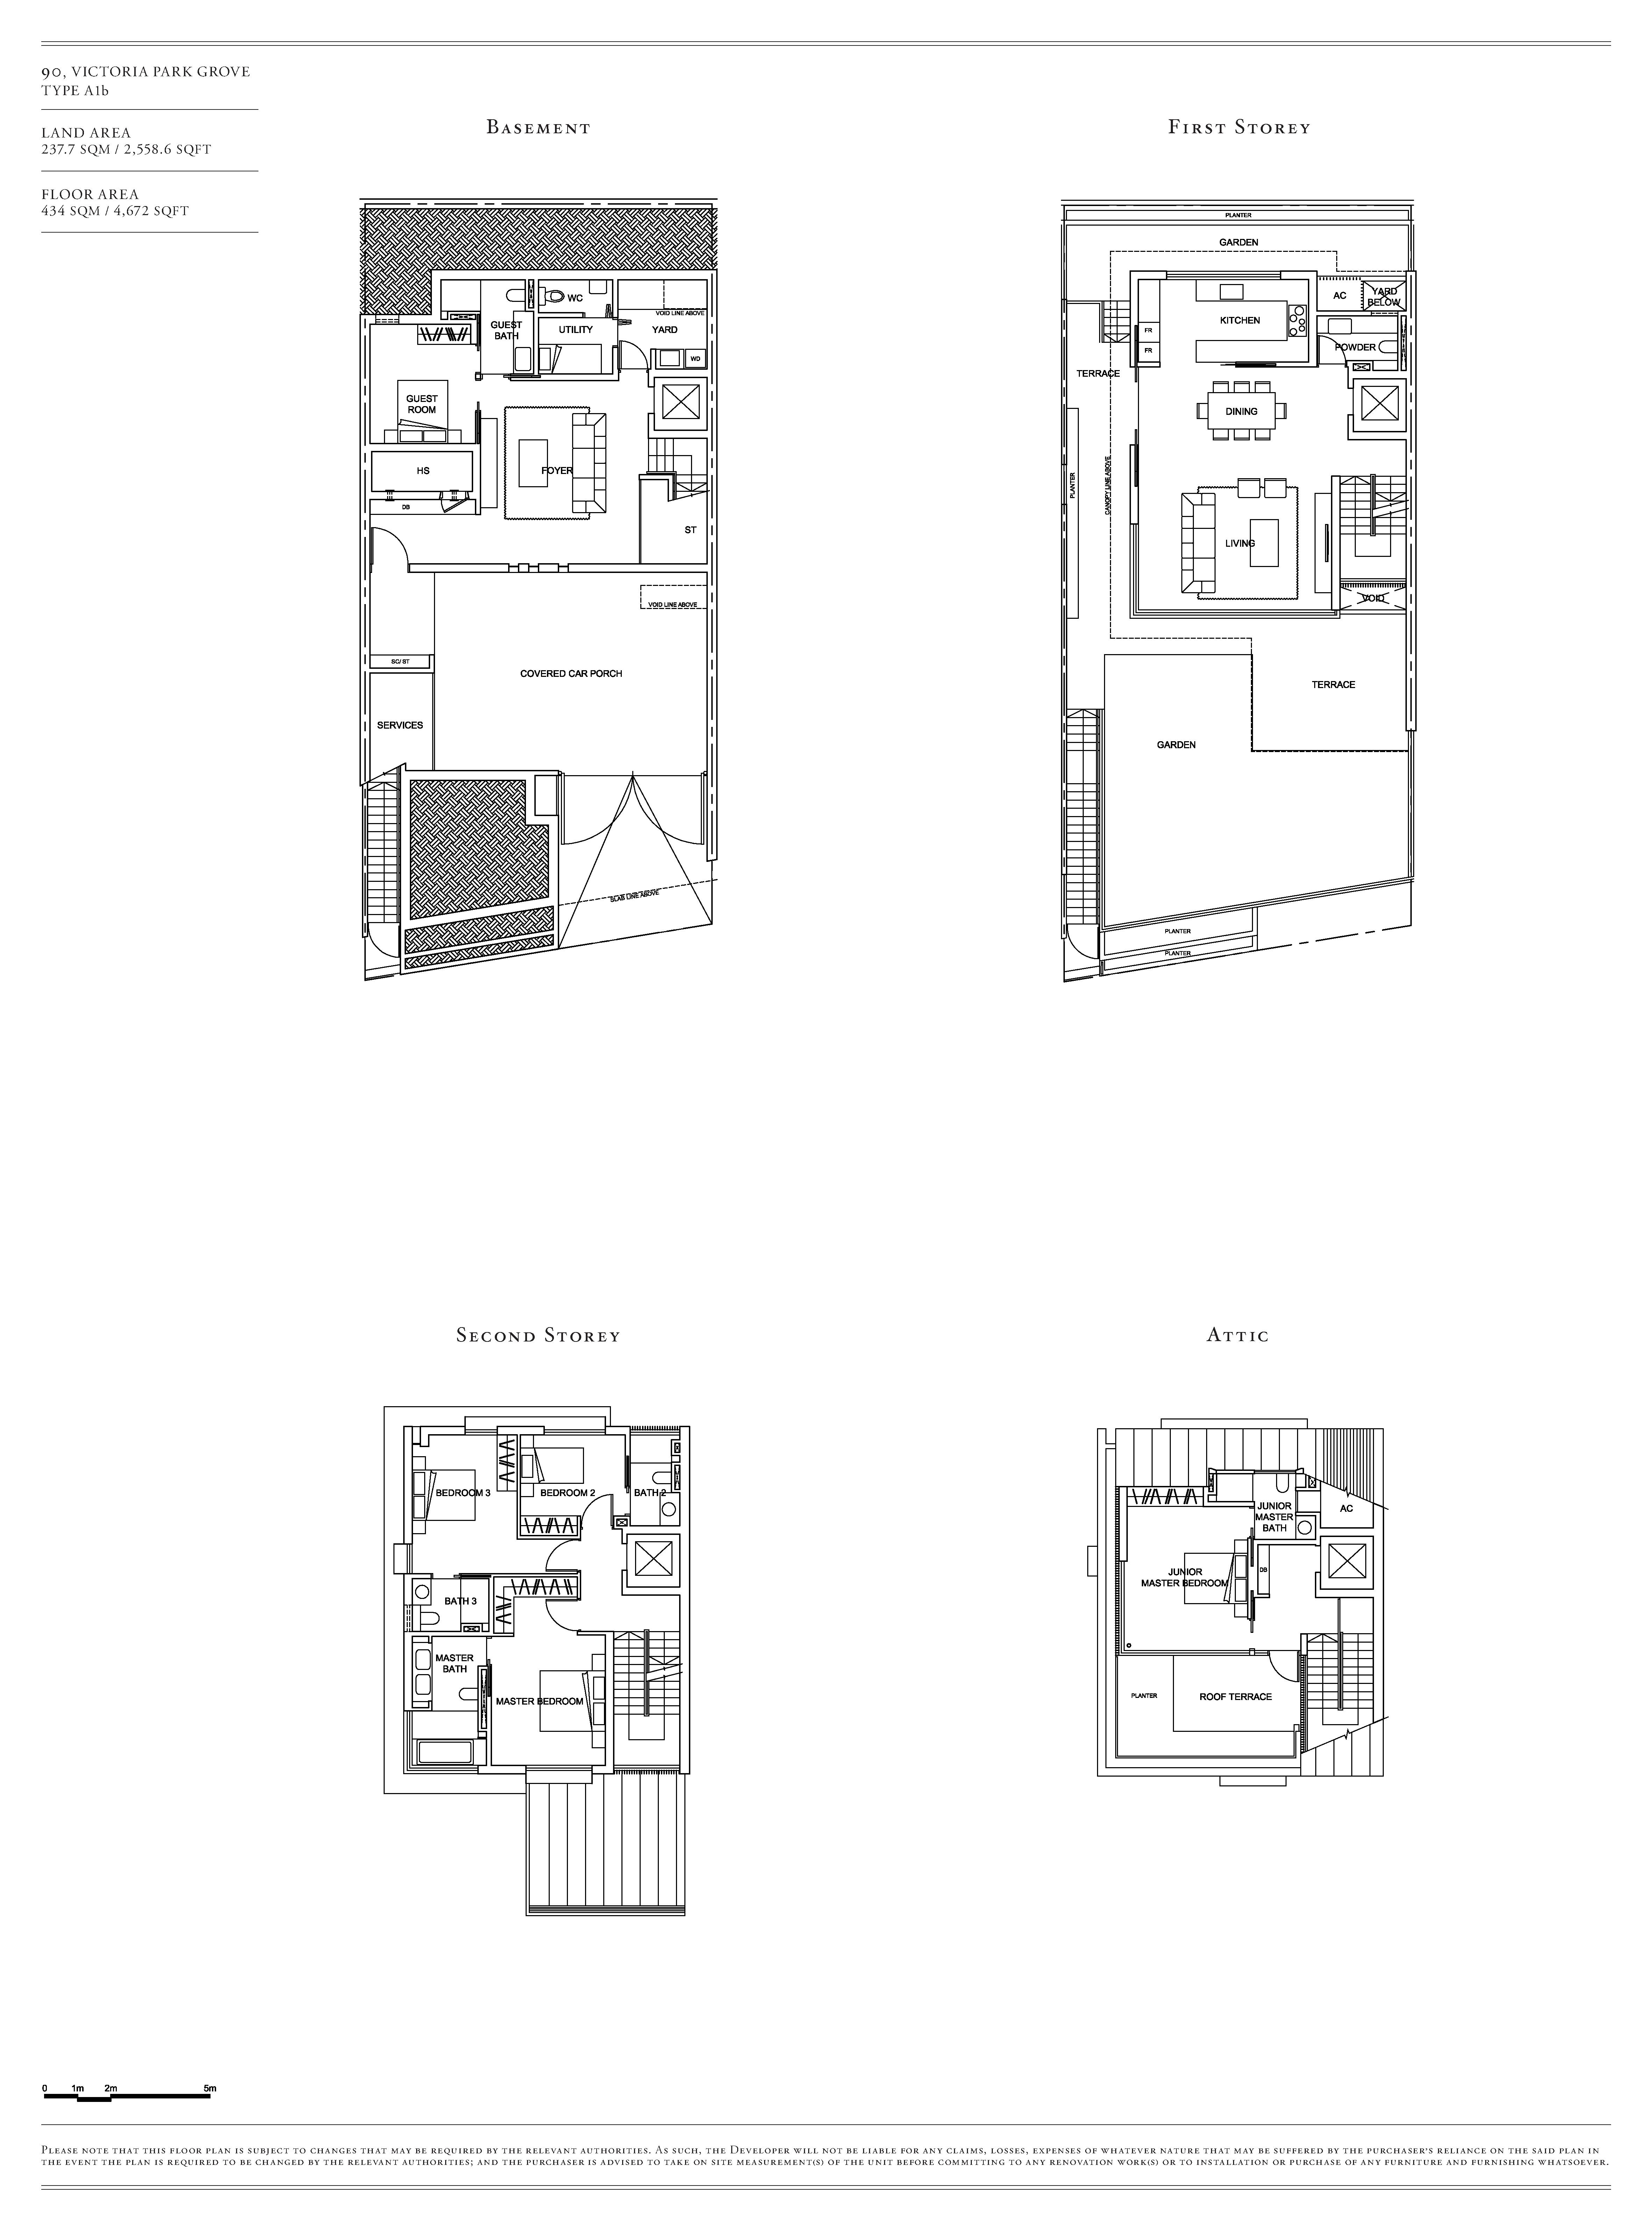 Victoria Park Villas House 90 Type A1b Floor Plans